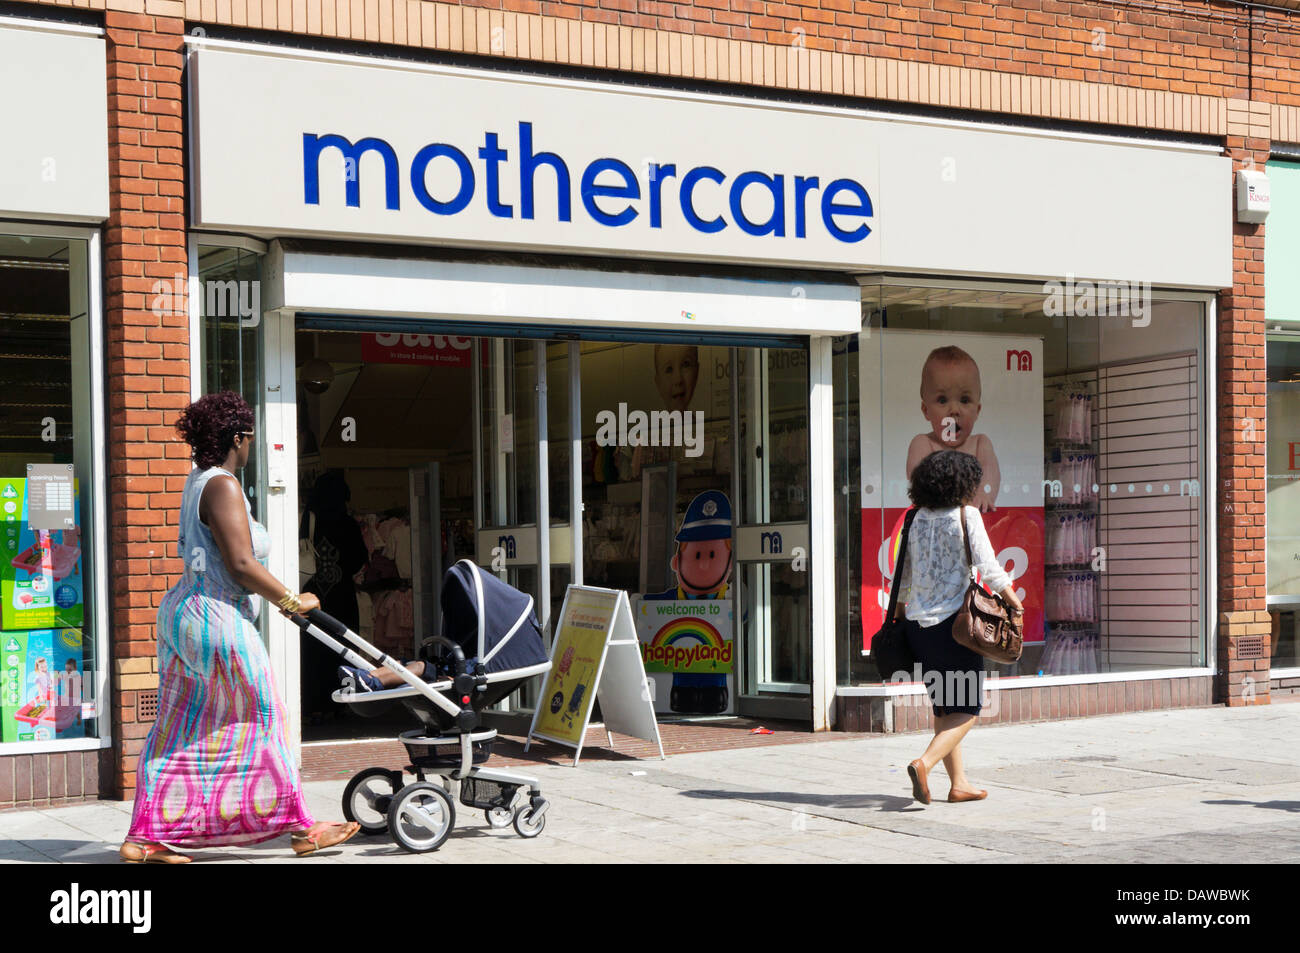 A branch of Mothercare - Stock Image